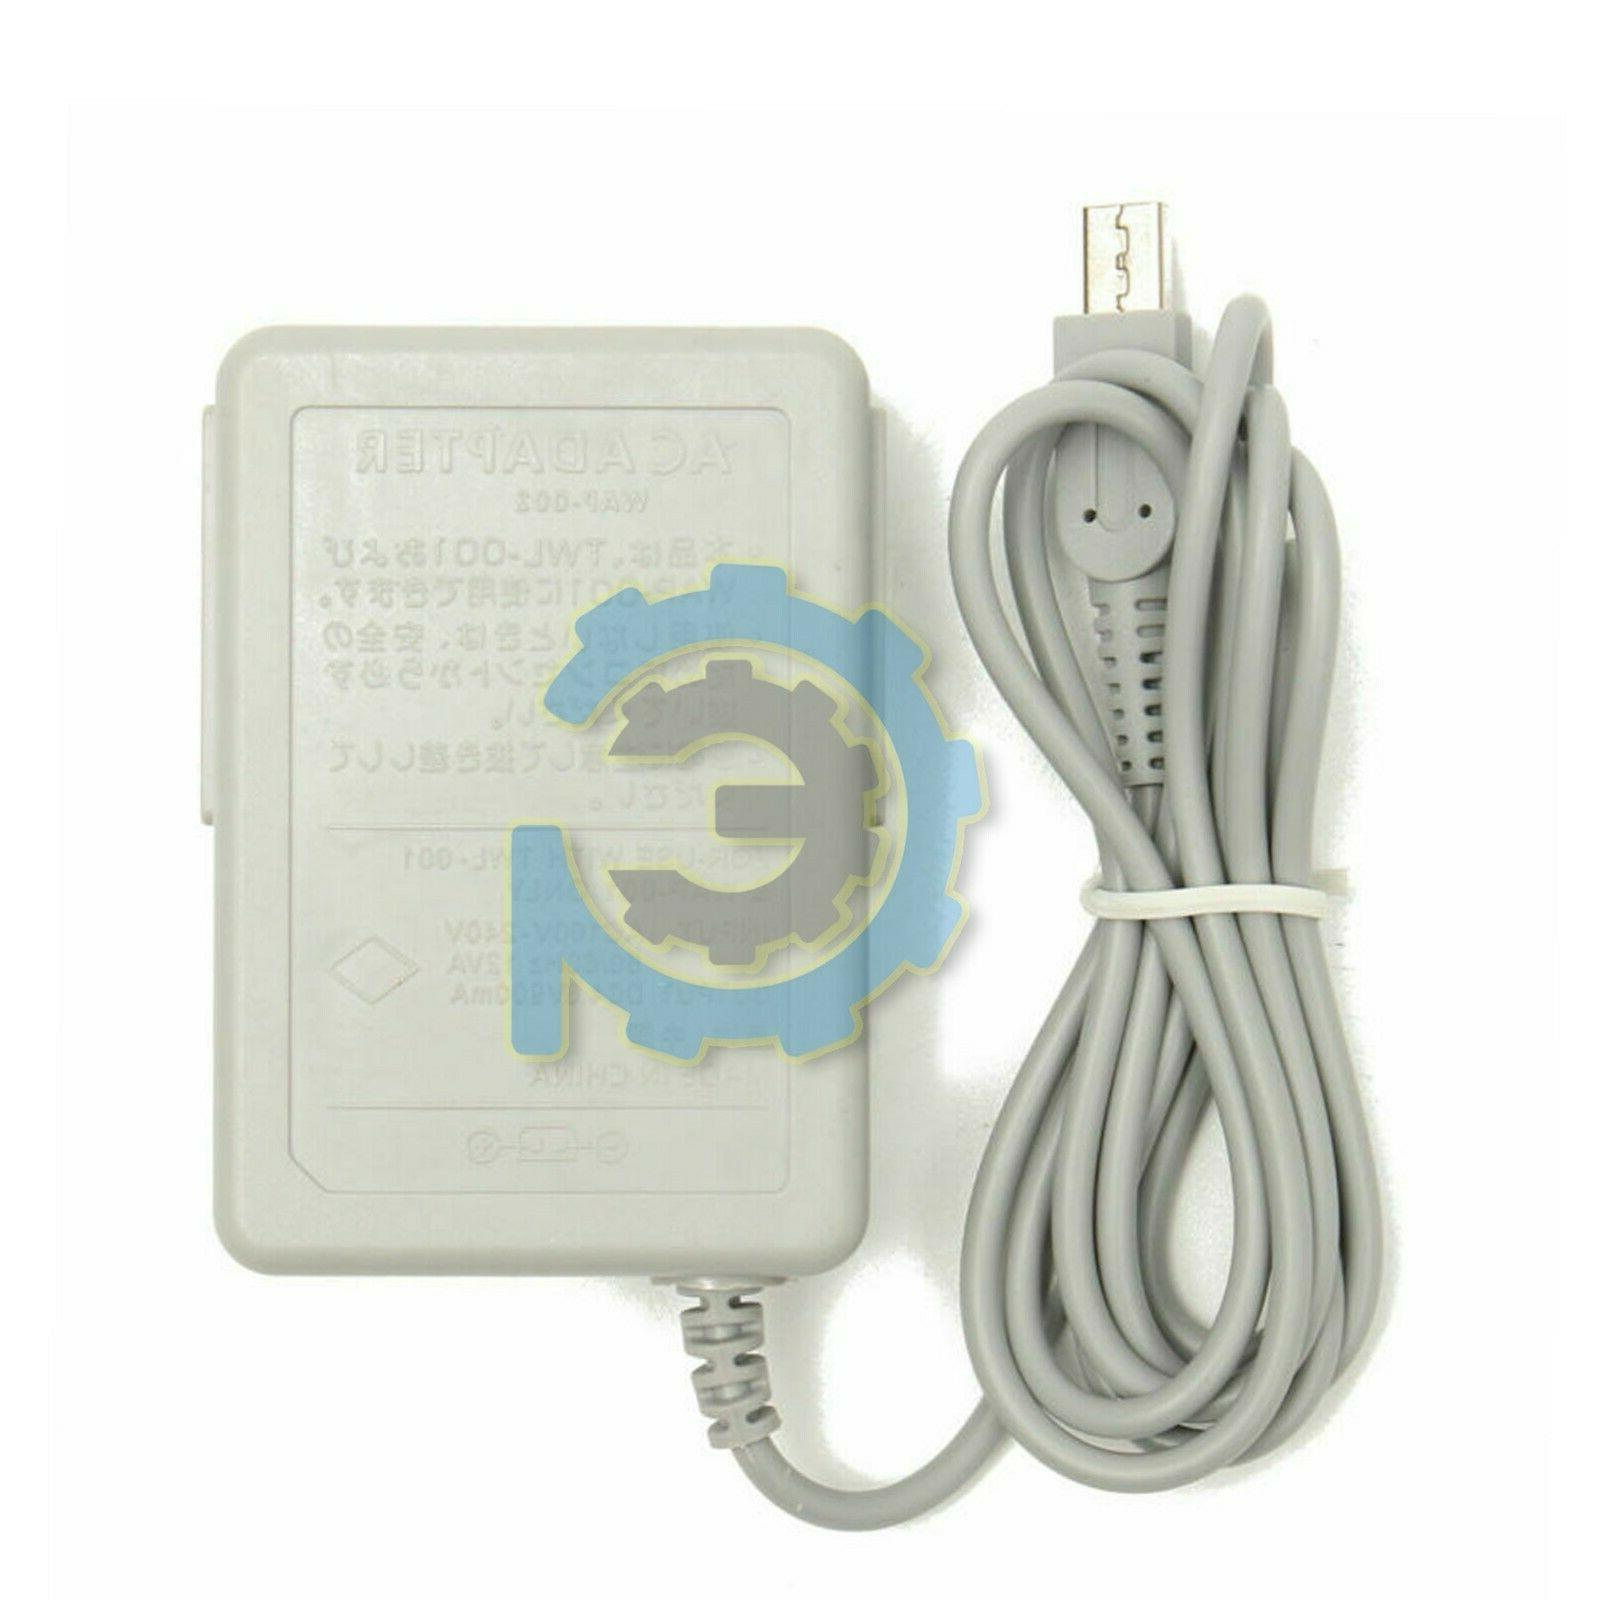 New Adapter Nintendo DSi/ 2DS/ 3DS/ DSi XL System